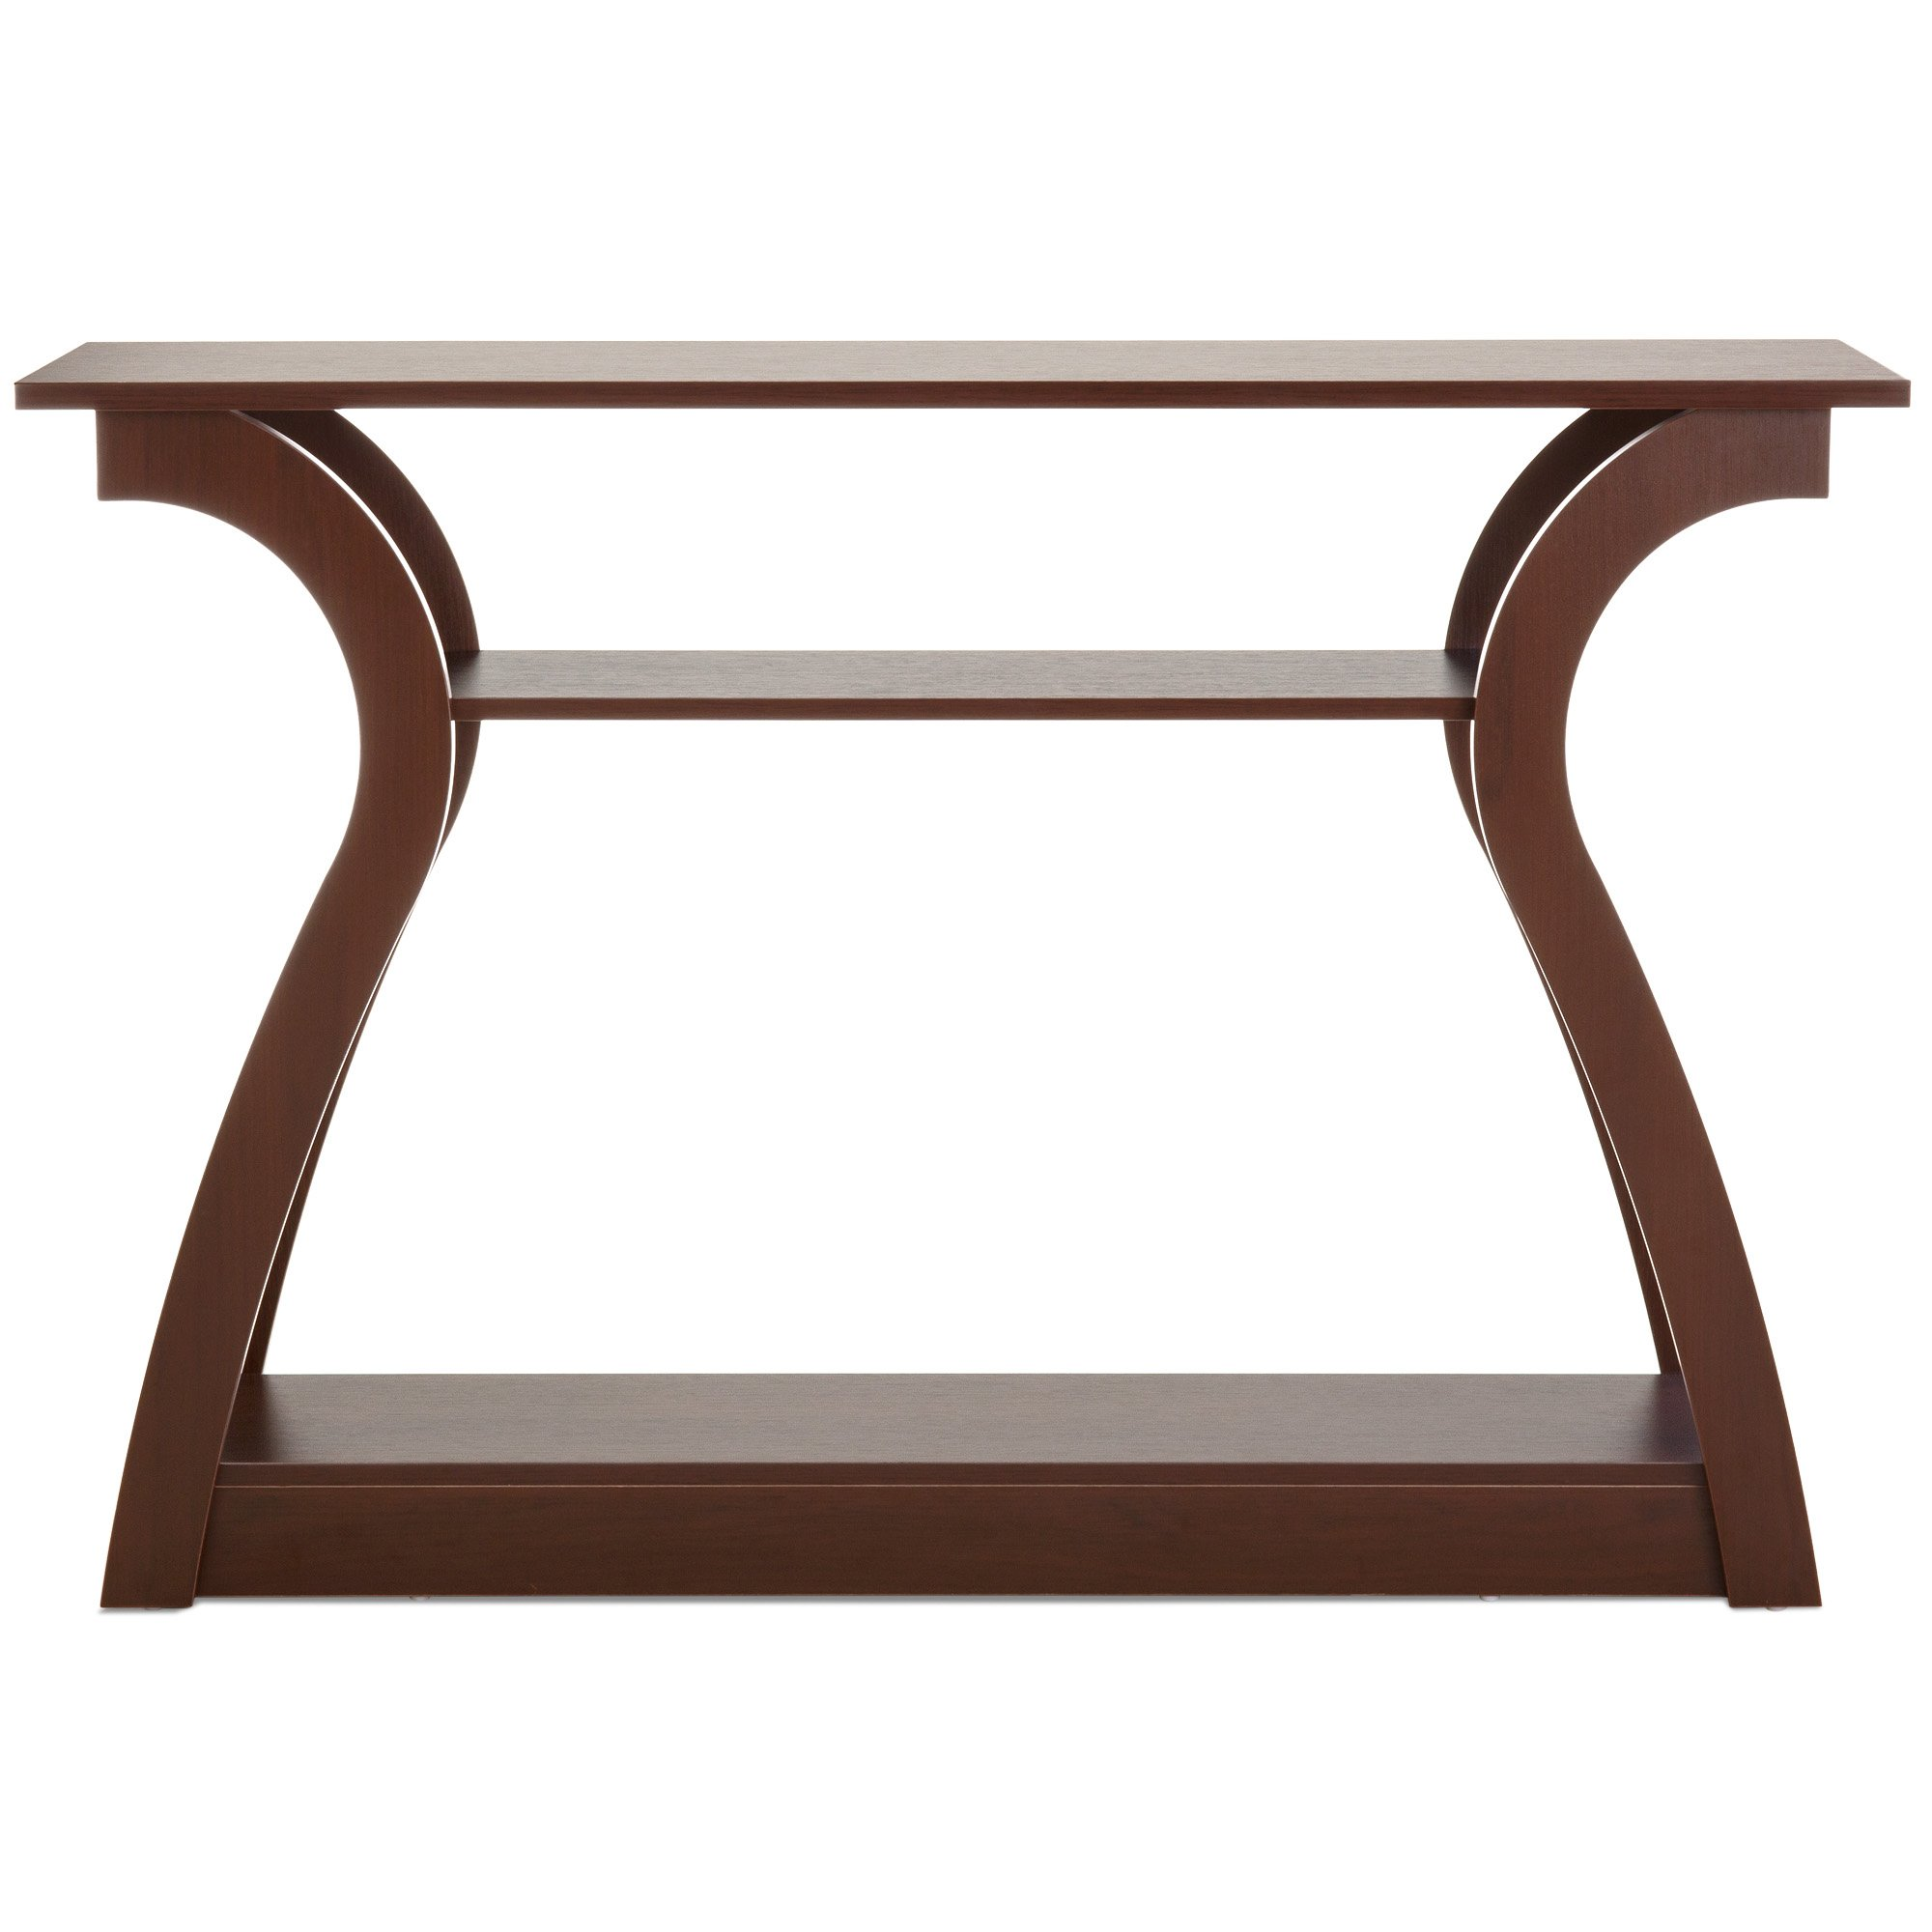 Best Choice Products 47in 3-Shelf Modern Decorative Console Accent Table Furniture for Entryway, Living Room by Best Choice Products